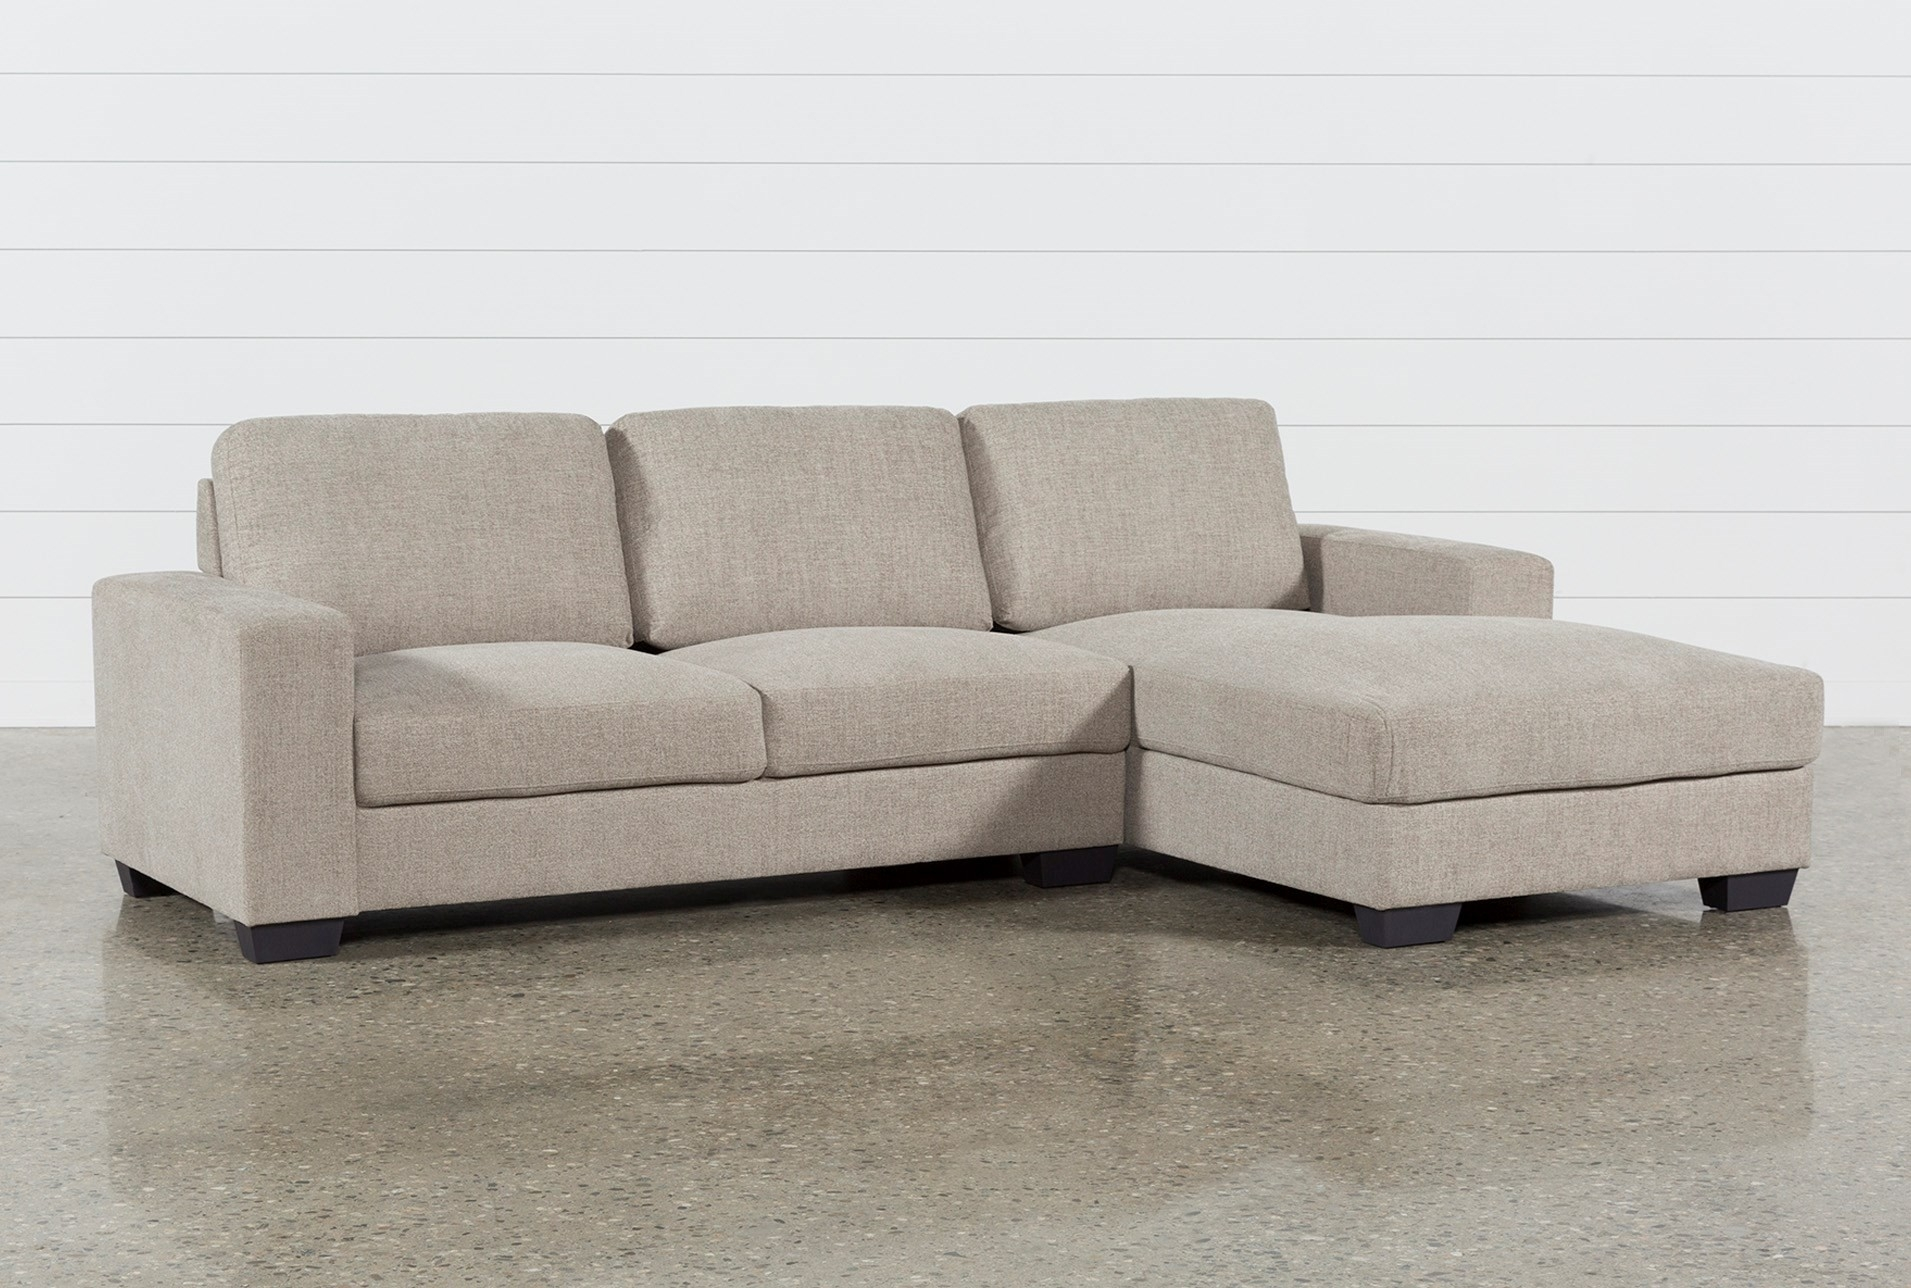 2 Piece Sectional Sofa With Chaise – Gogygames For Delano 2 Piece Sectionals With Raf Oversized Chaise (Image 2 of 25)